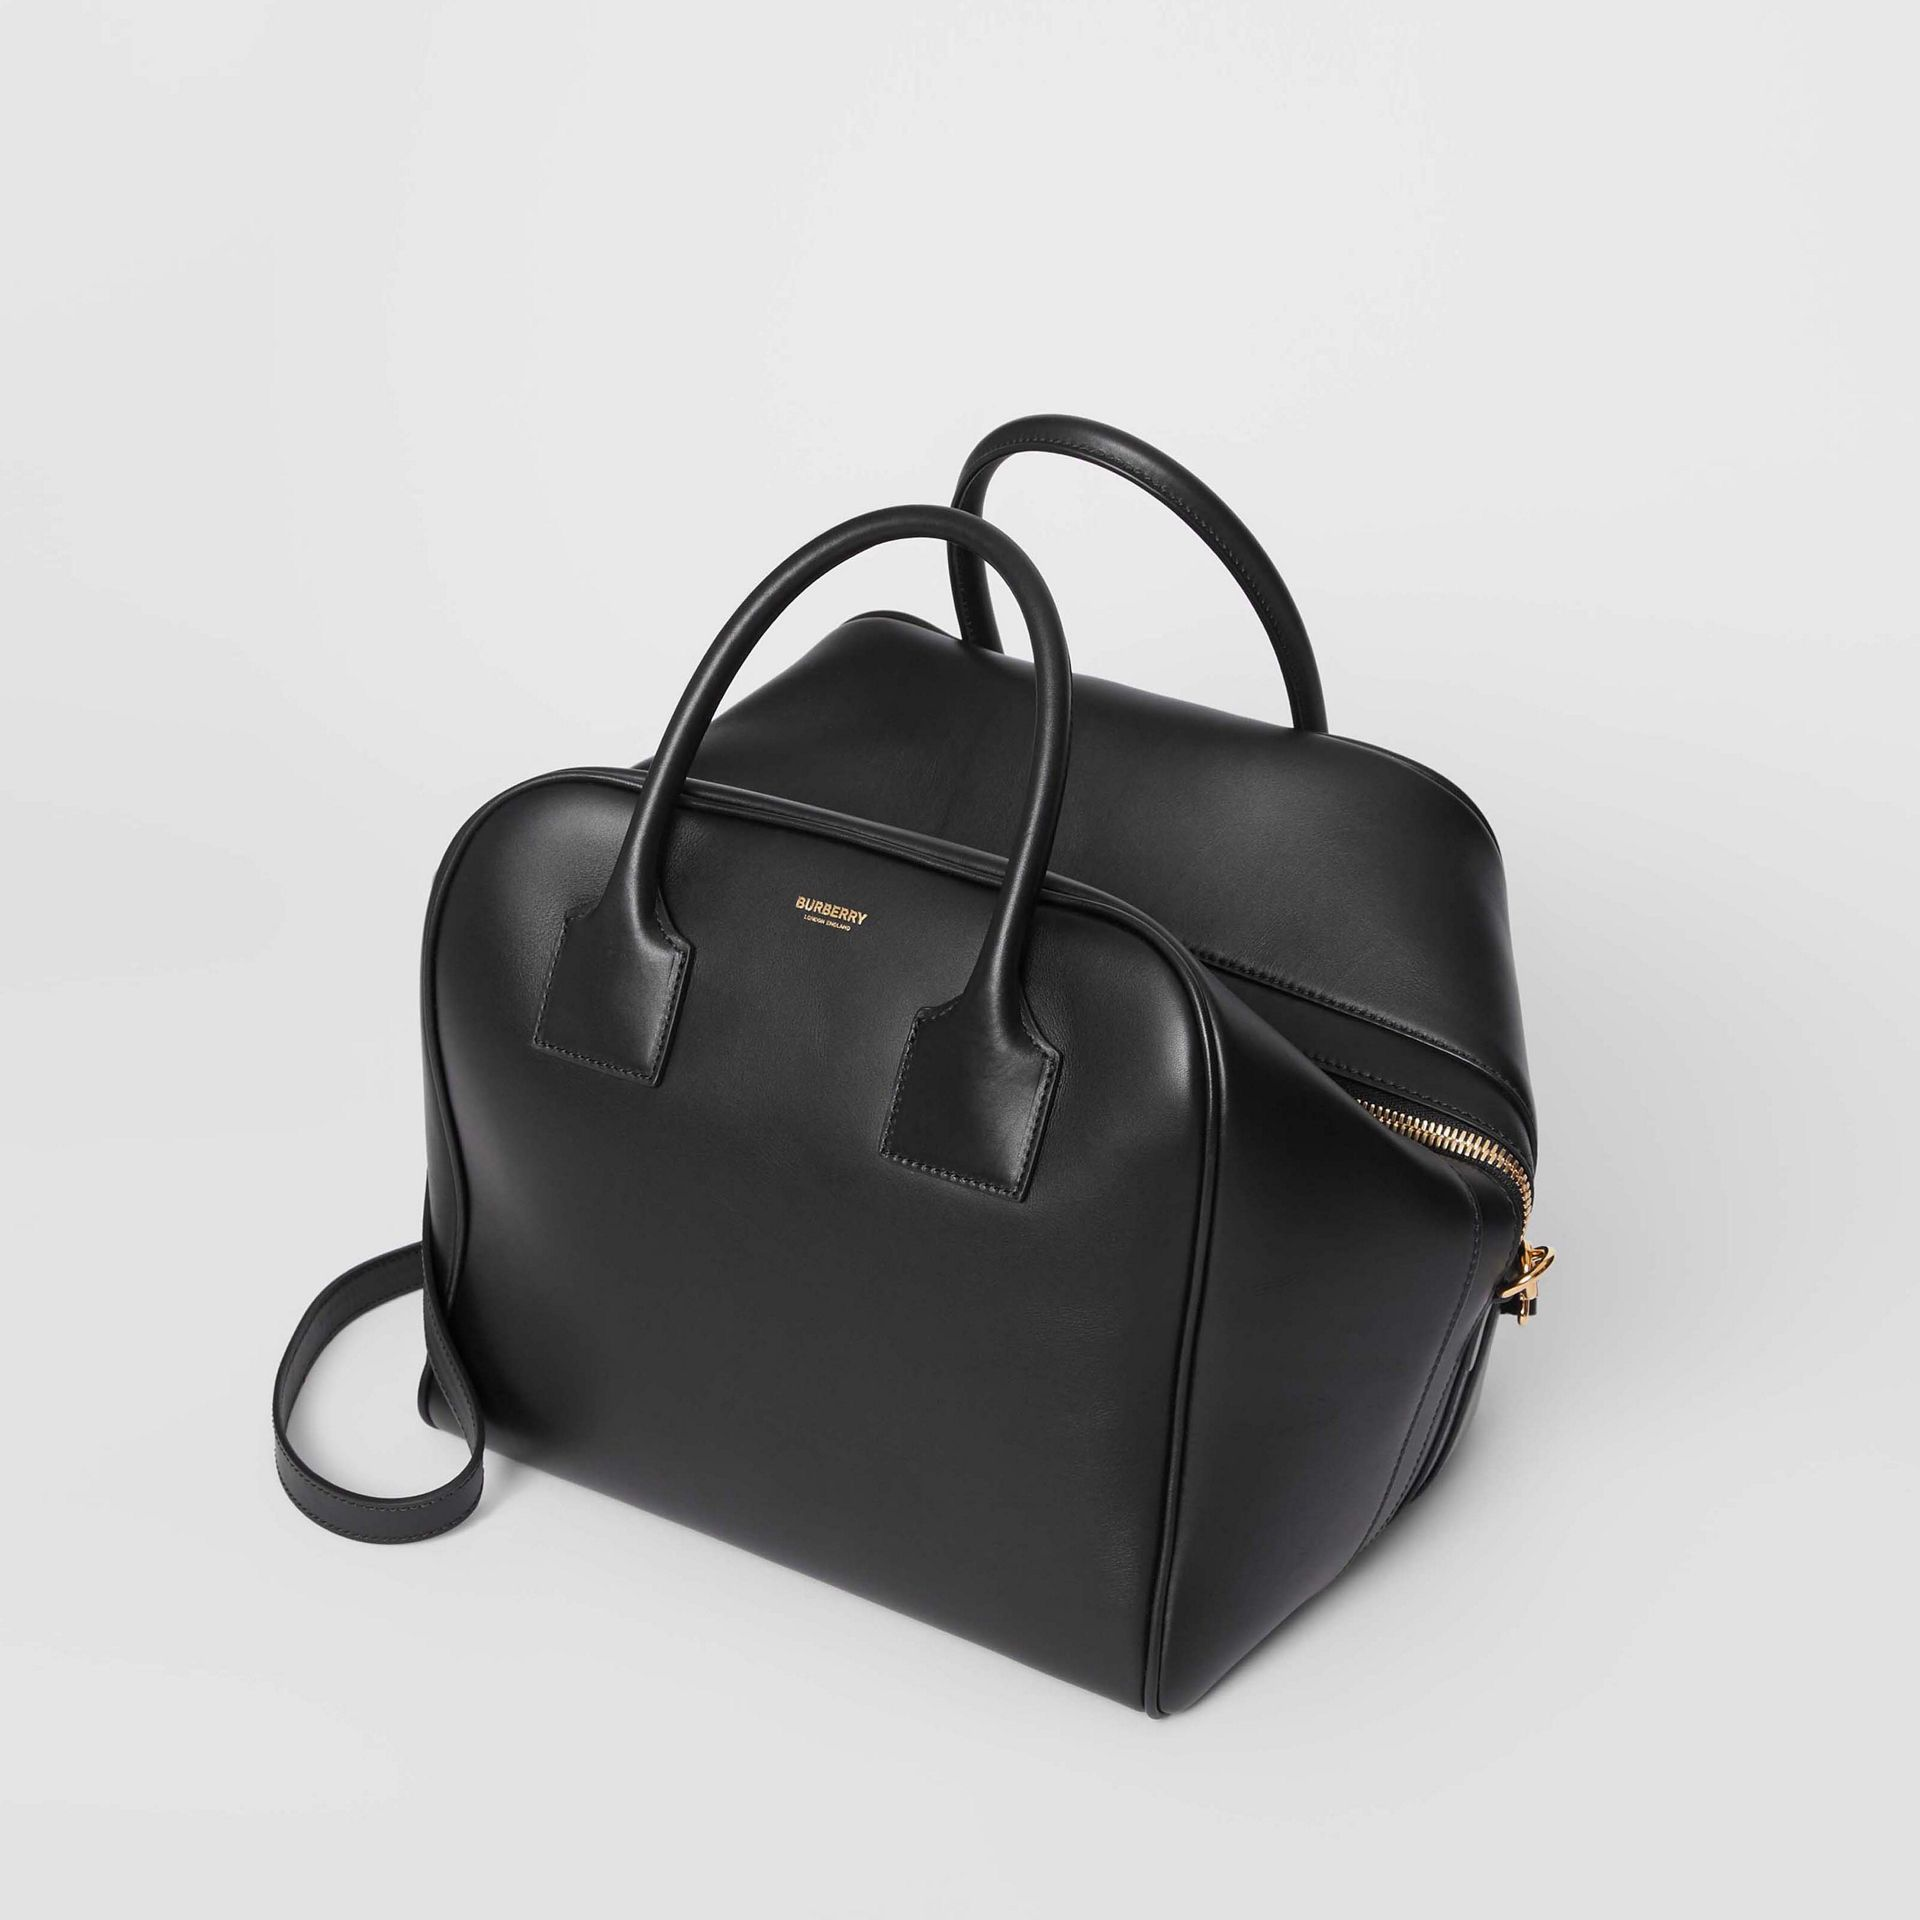 Medium Leather Cube Bag in Black - Women | Burberry - gallery image 3